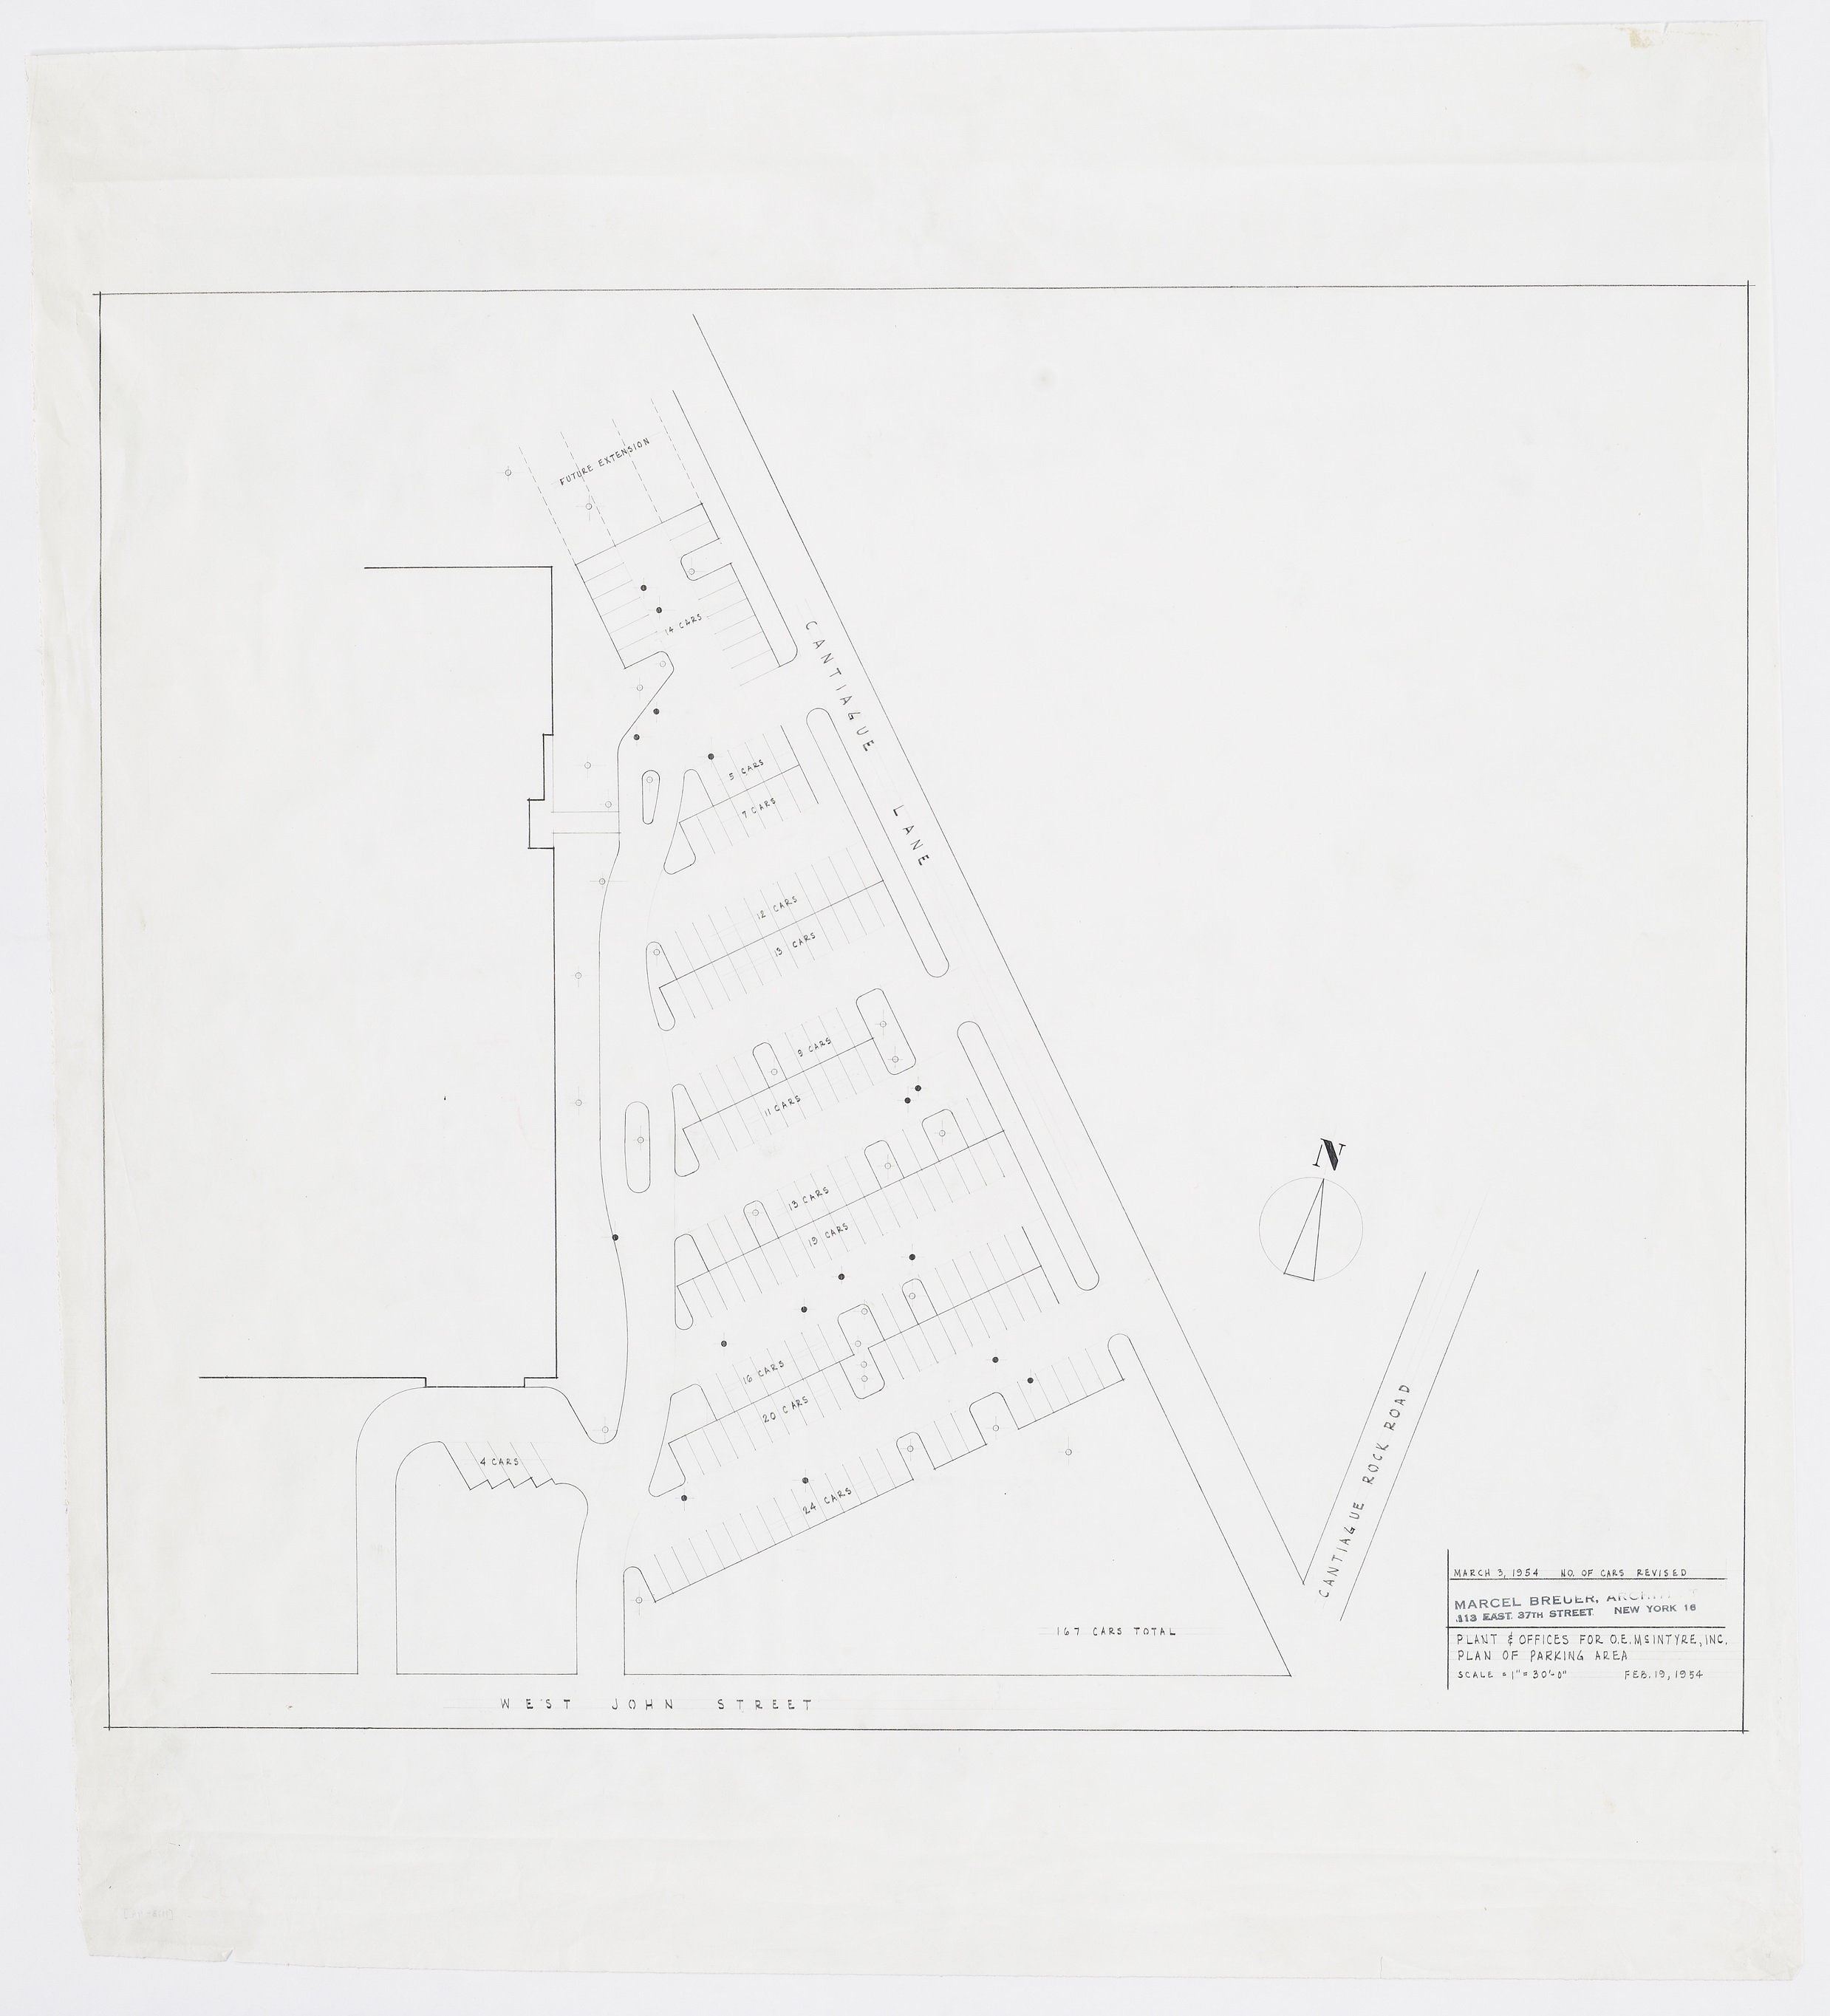 Click to select: Plan of Parking Area (167 Cars)